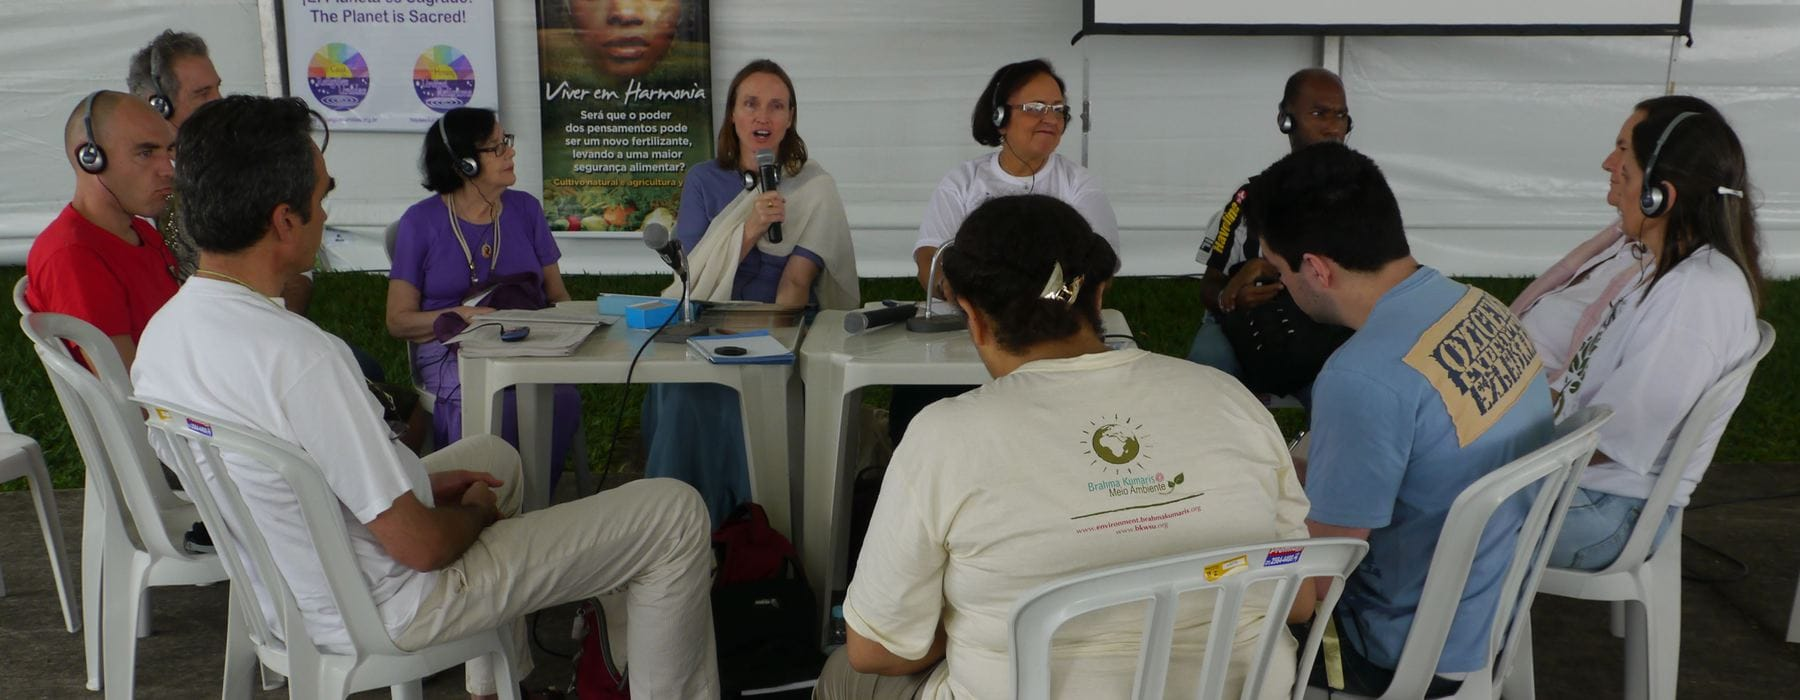 Tamasin Ramsay speaking at the Brahma Kumaris side event at the Peoples Summit on Consciousness and Environment: The consciousness of Two Living Systems